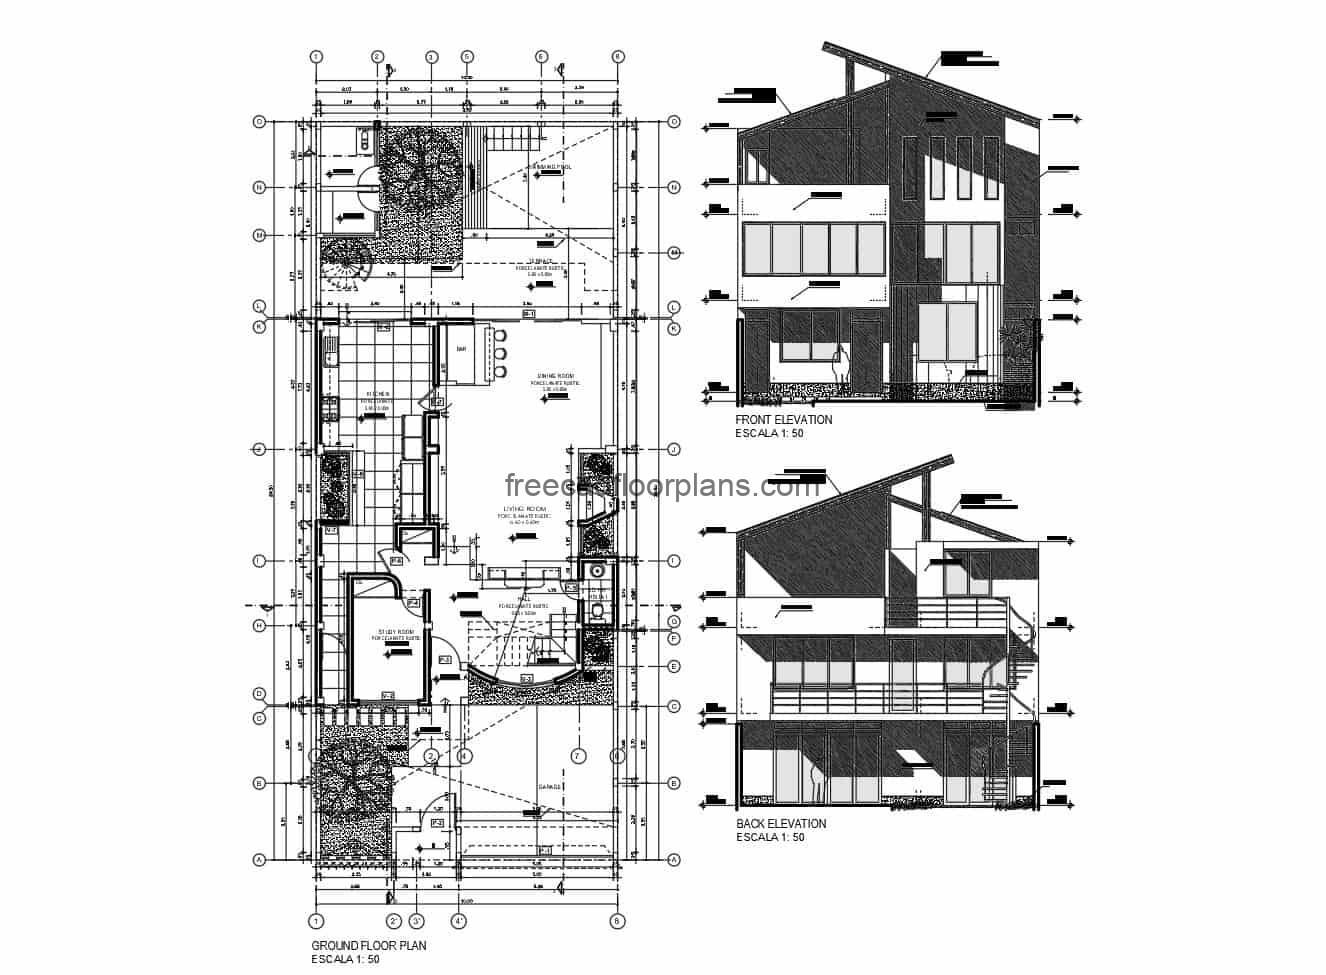 Architectural project plans of modern residence of three levels with defined spaces, autocad blocks, facade, elevations and sections. Plan for free download in DWG format.